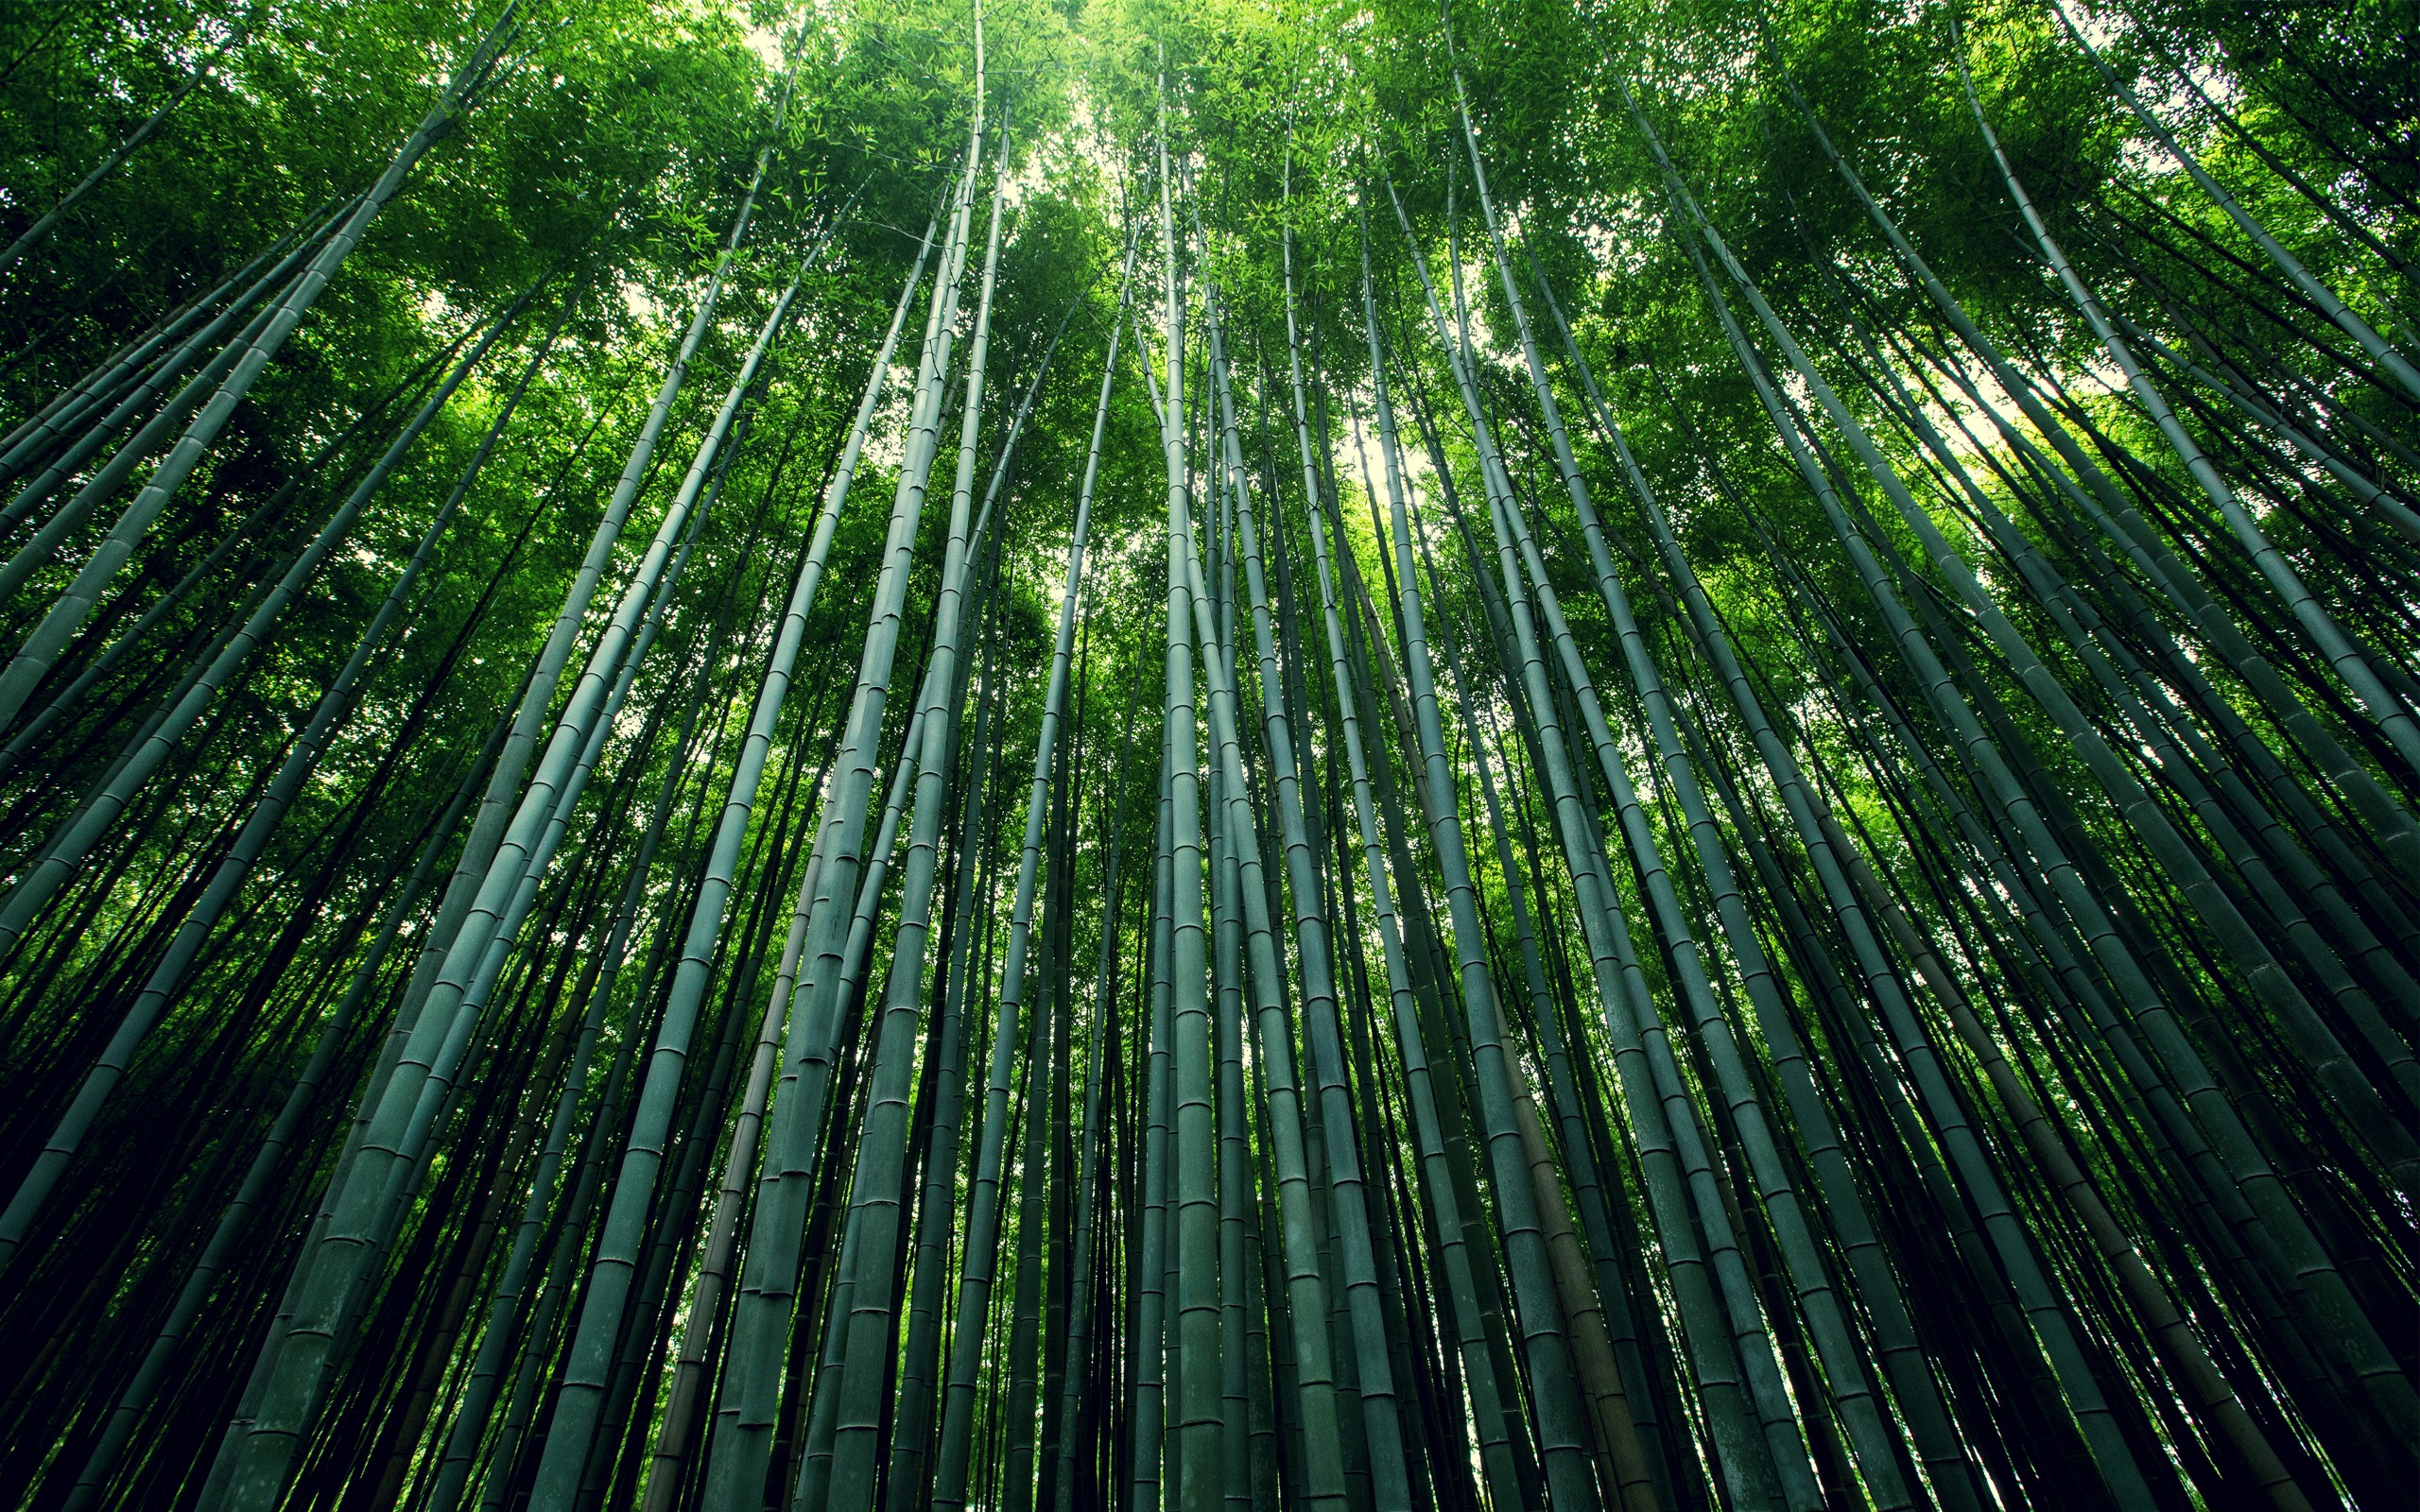 Emerald bamboo forest 54419